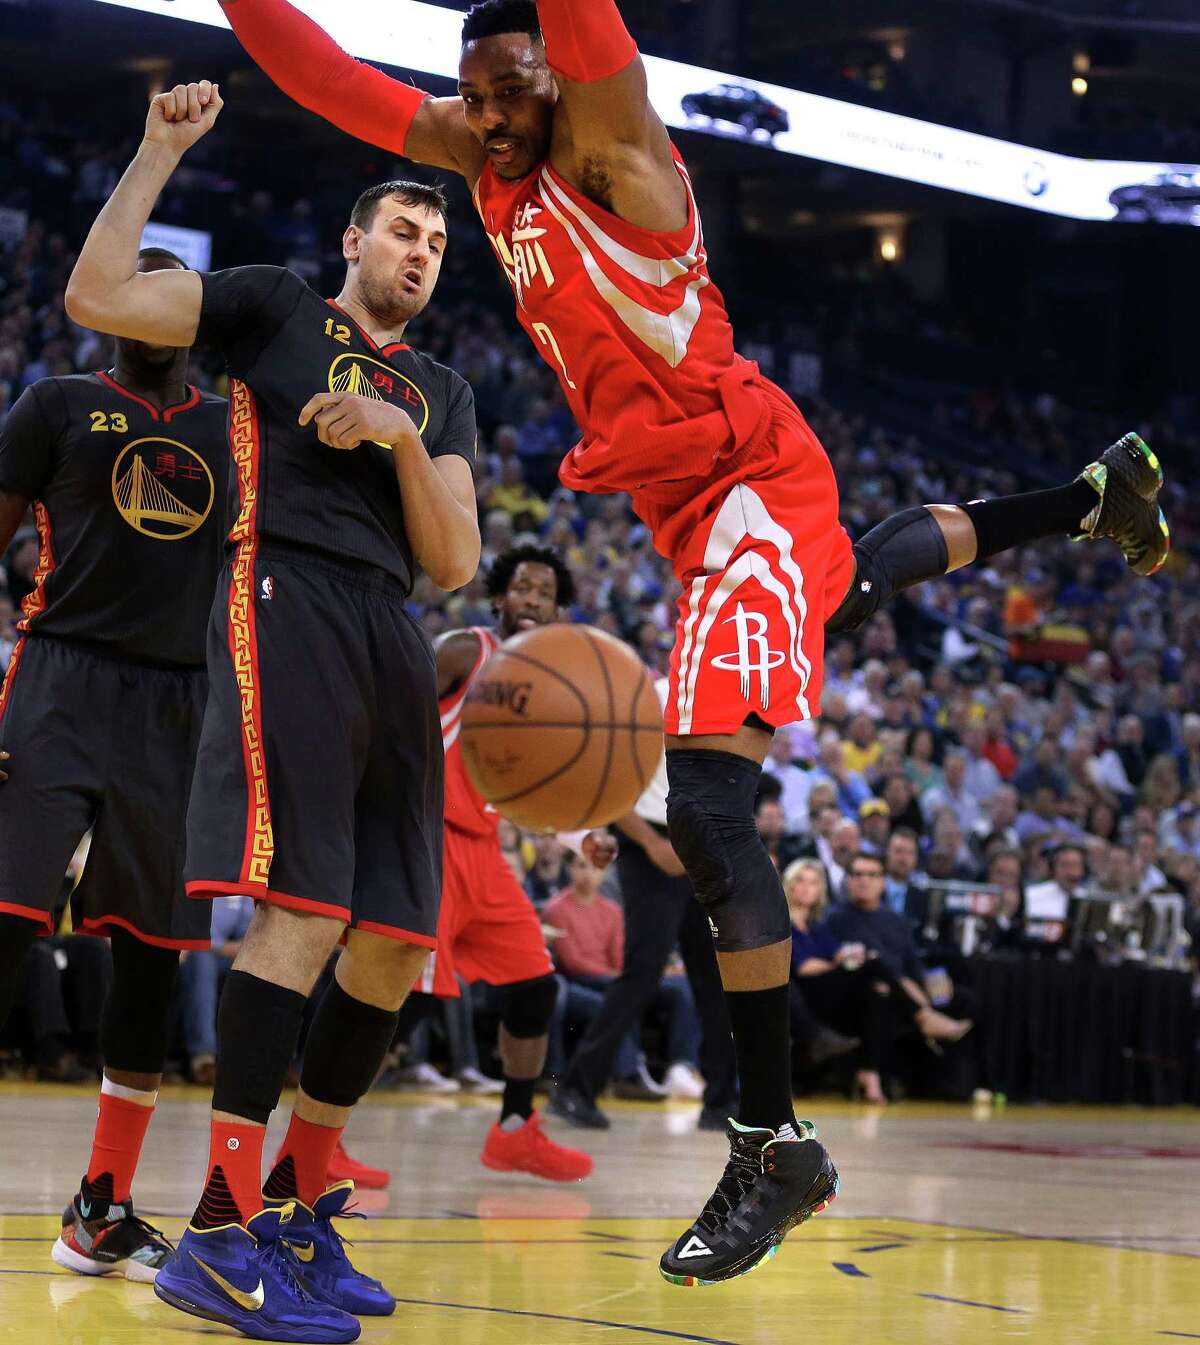 Golden State Warriors' Andrew Bogut (12) knocks the ball from Houston Rockets' Dwight Howard, right, during the first half of an NBA basketball game Tuesday, Feb. 9, 2016, in Oakland, Calif. (AP Photo/Ben Margot)